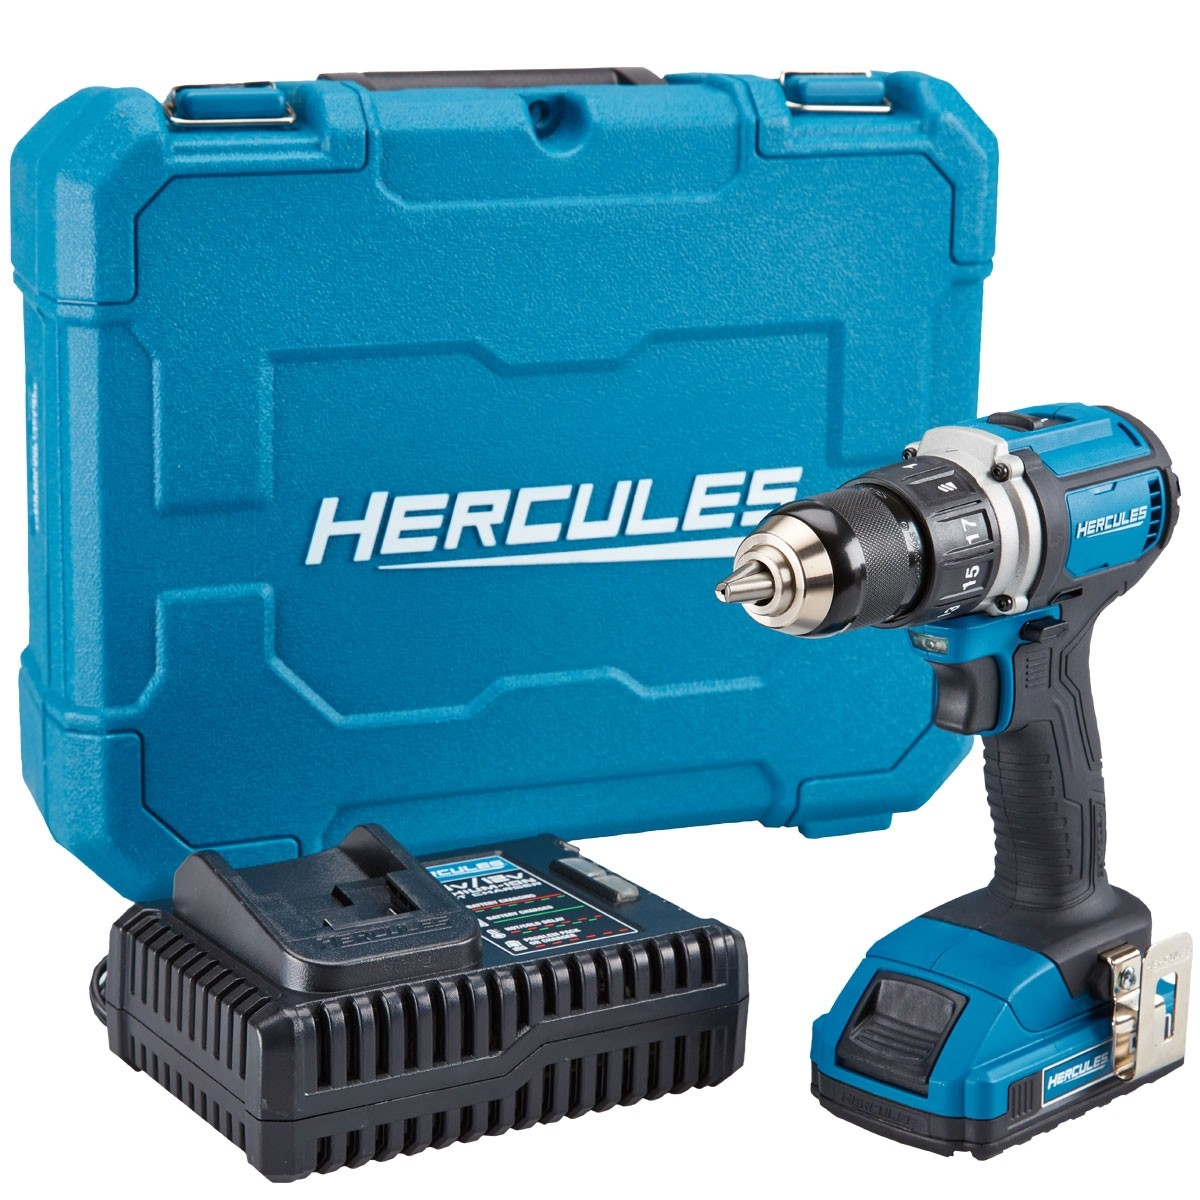 Hercules 20v Cordless Power Tools Is Harbor Freight